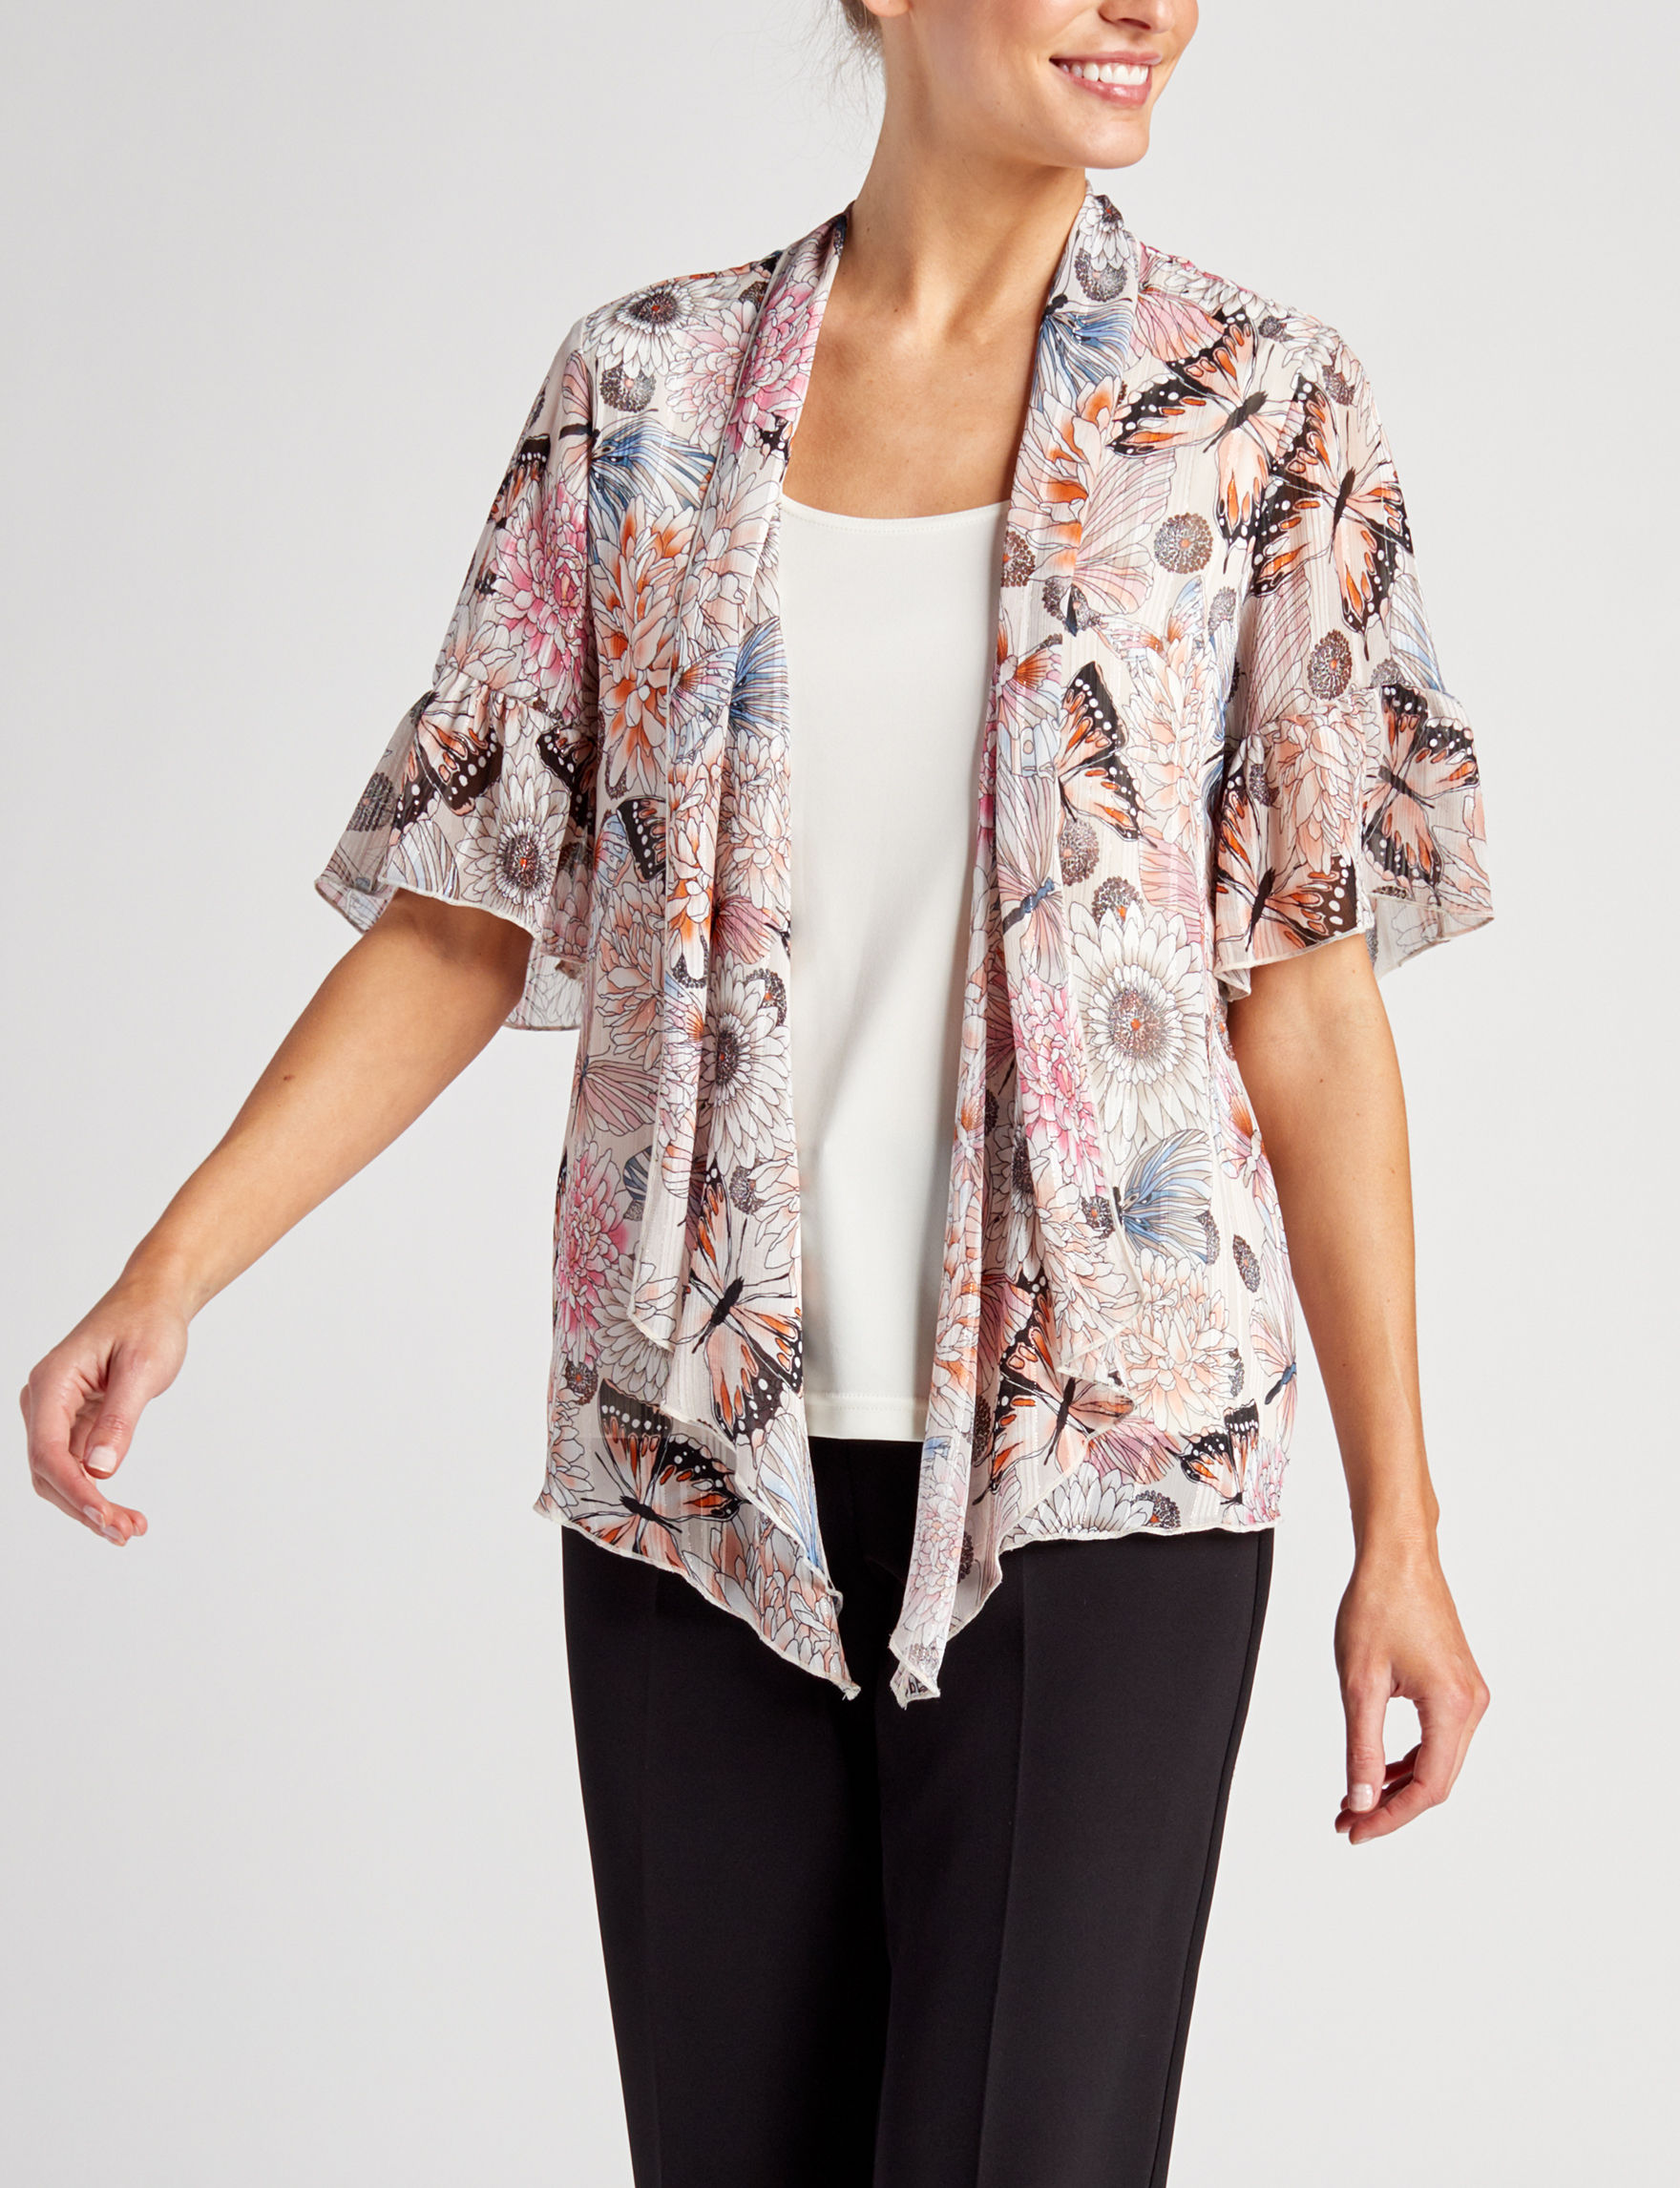 Sara Michelle Pink Floral Shirts & Blouses